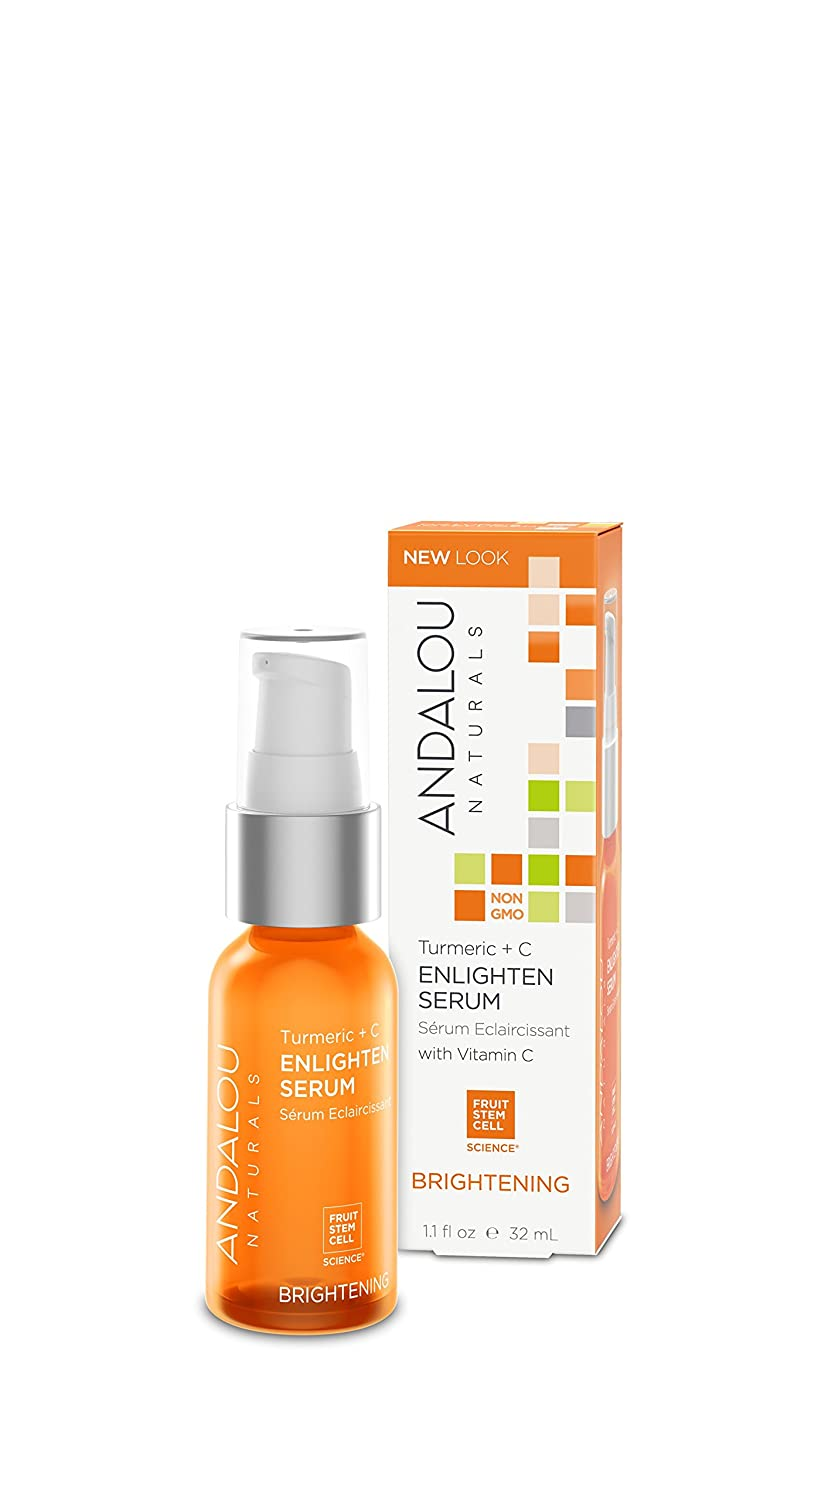 Andalou Naturals Turmeric + C Enlighten Serum, 1.1 fl. Oz. 95374